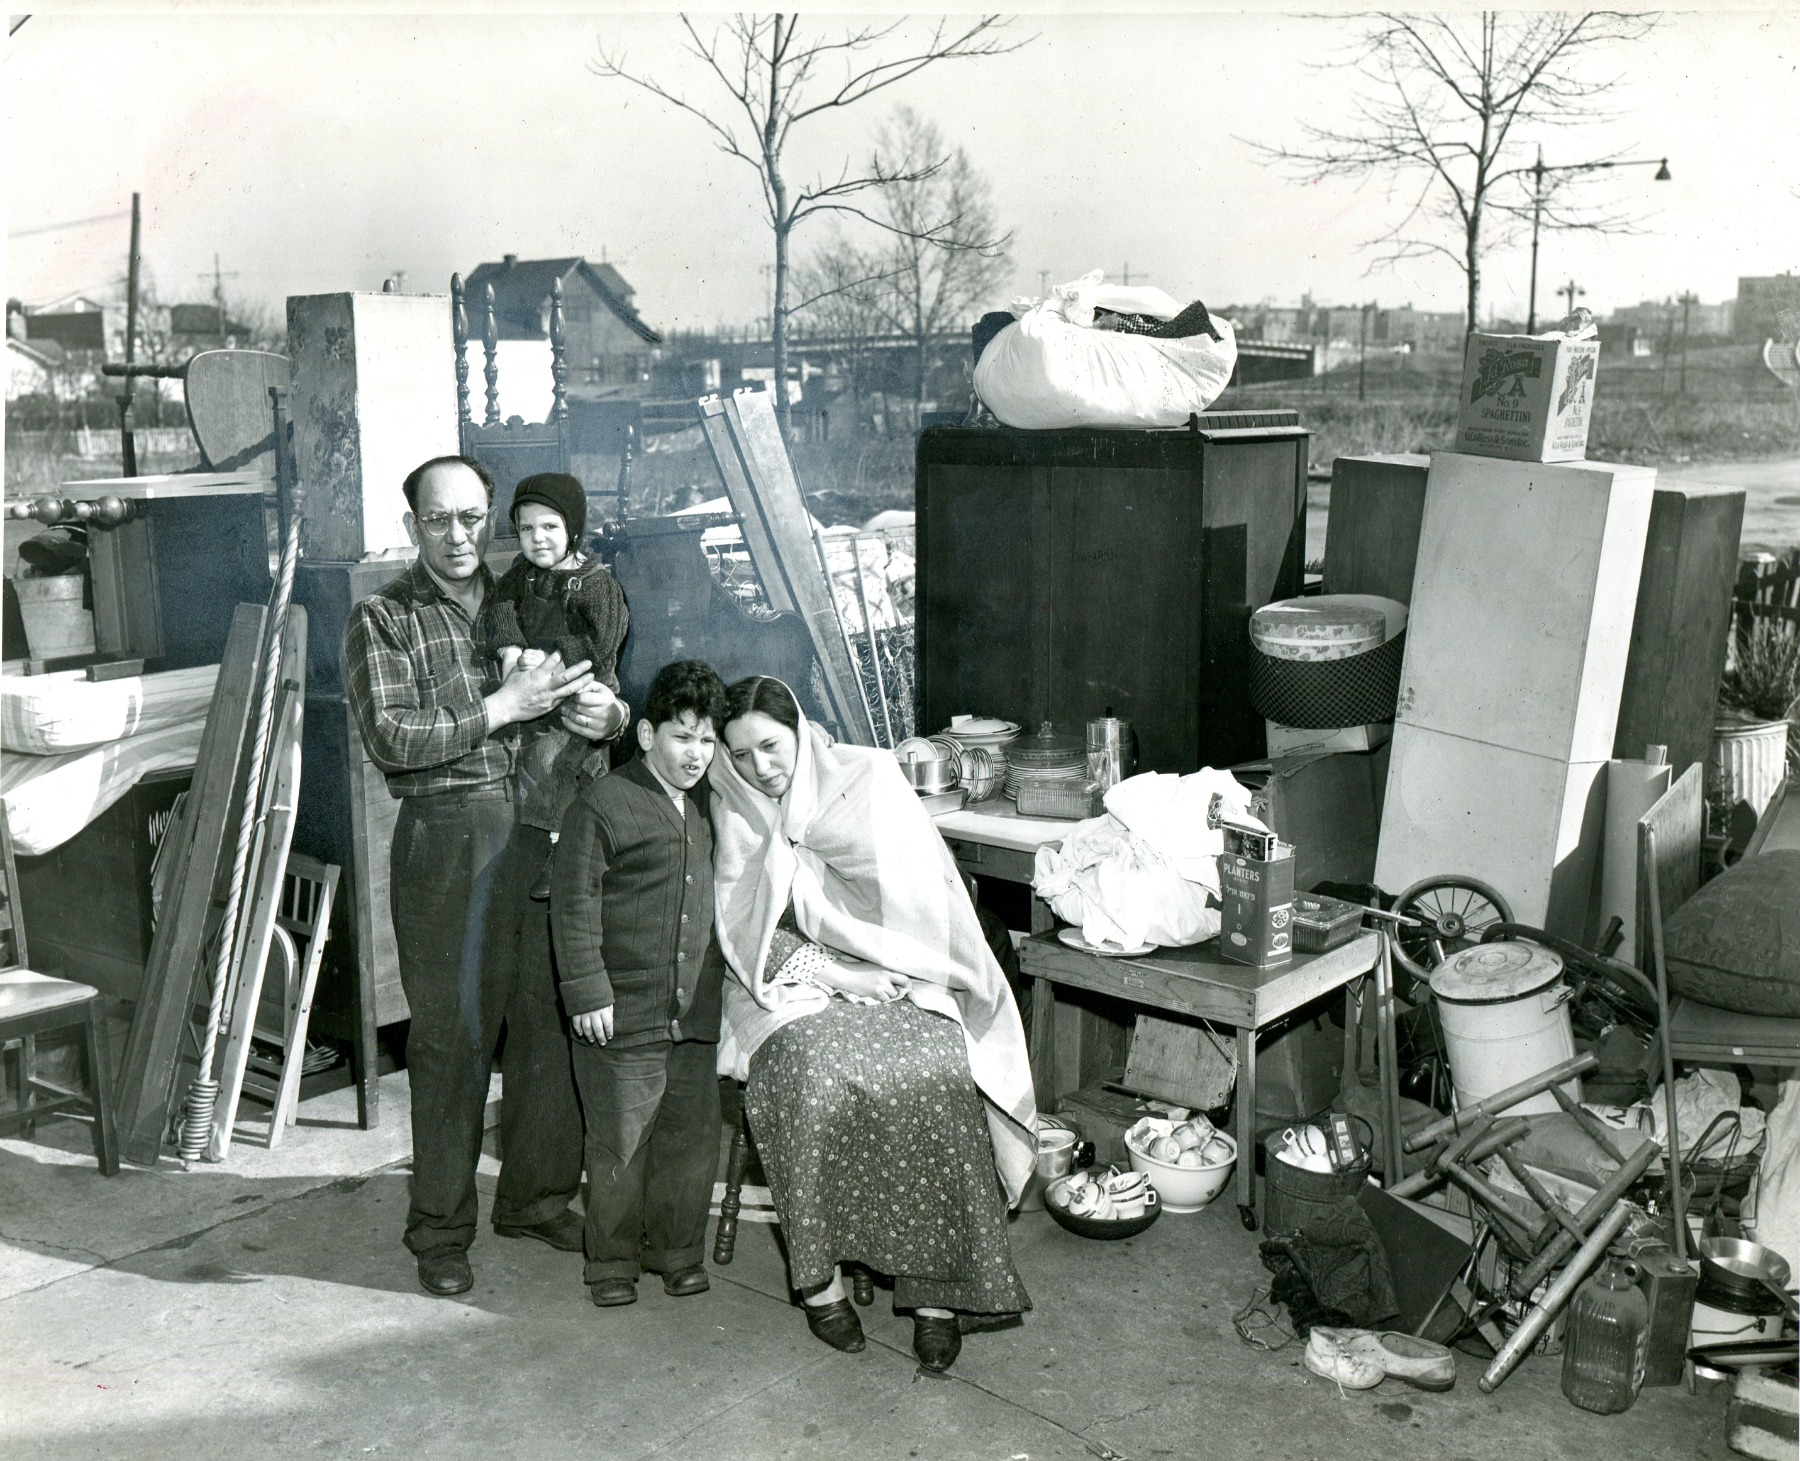 ON THE STREET...Irving Haberman's shot of an evicted family